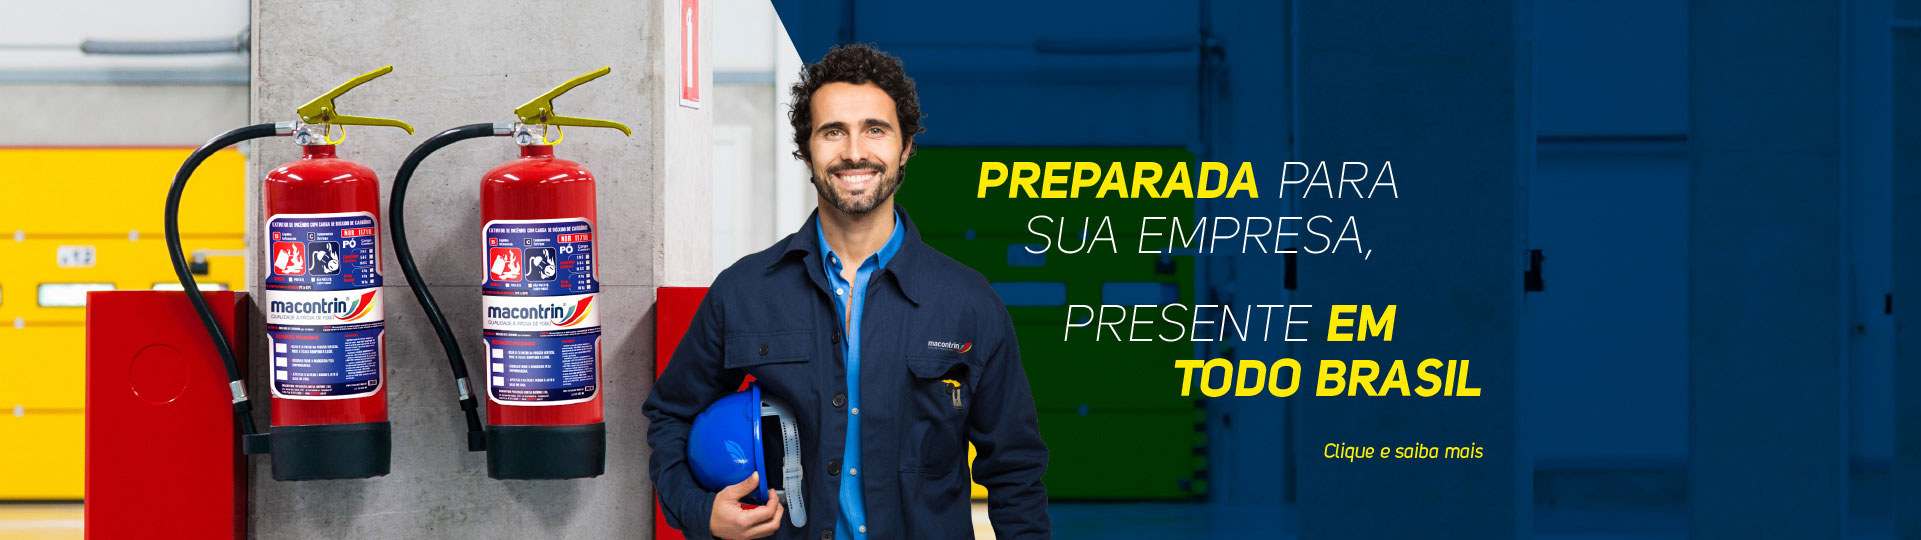 projetos-contra-incendio-fullbanner